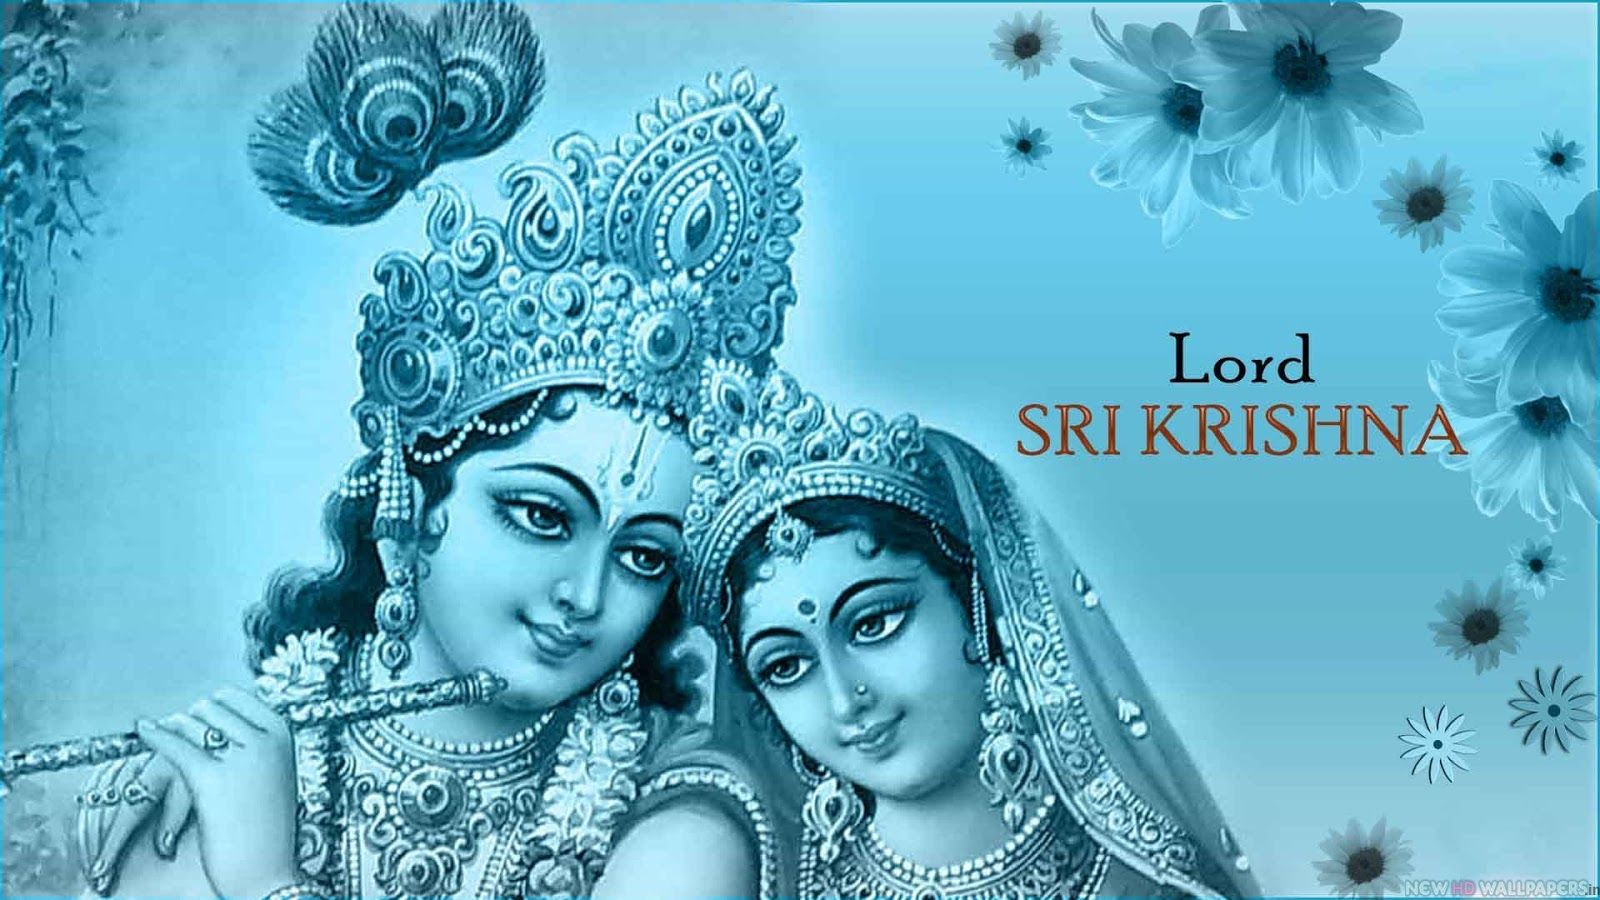 Festival 2013 radha e krisna pinterest hare krishna and krishna happy krishan janmashtami hd wallpapers and quotes with krishan hd images greetings kristyandbryce Gallery